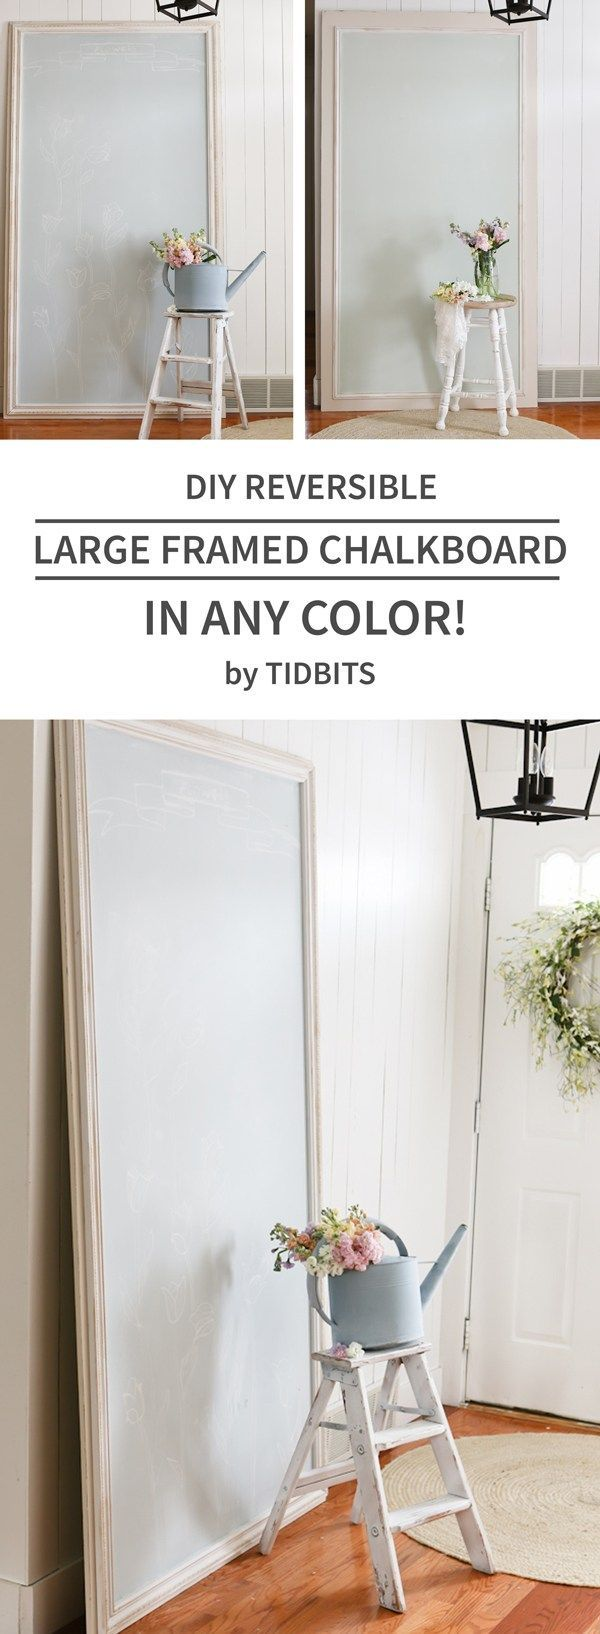 Best 25+ Large framed chalkboard ideas on Pinterest